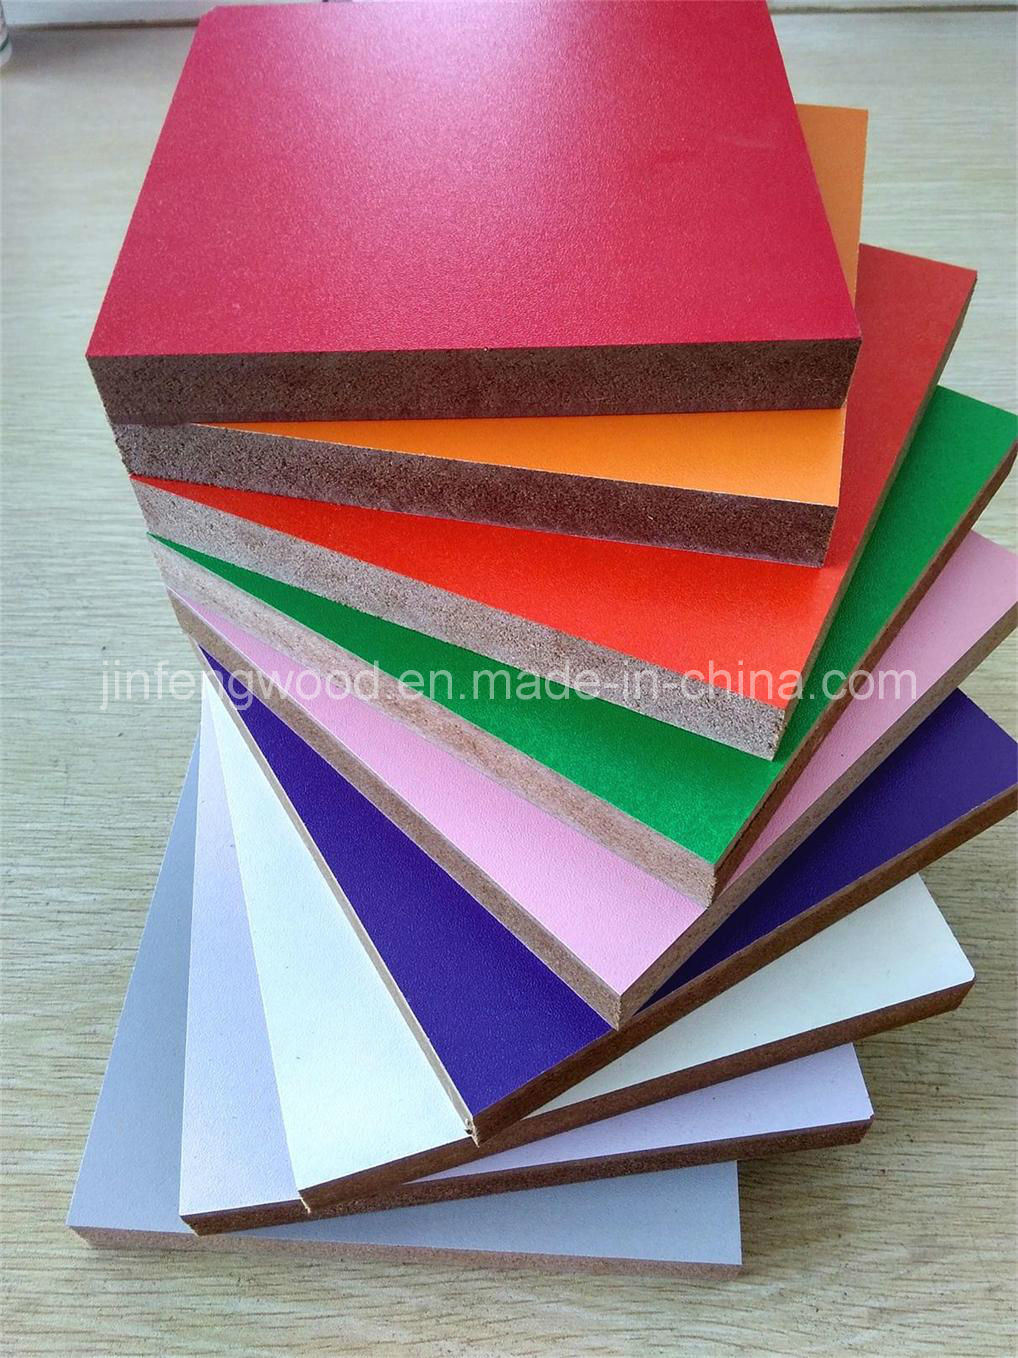 Melamine MDF for Classical Style Kitchen Furniture